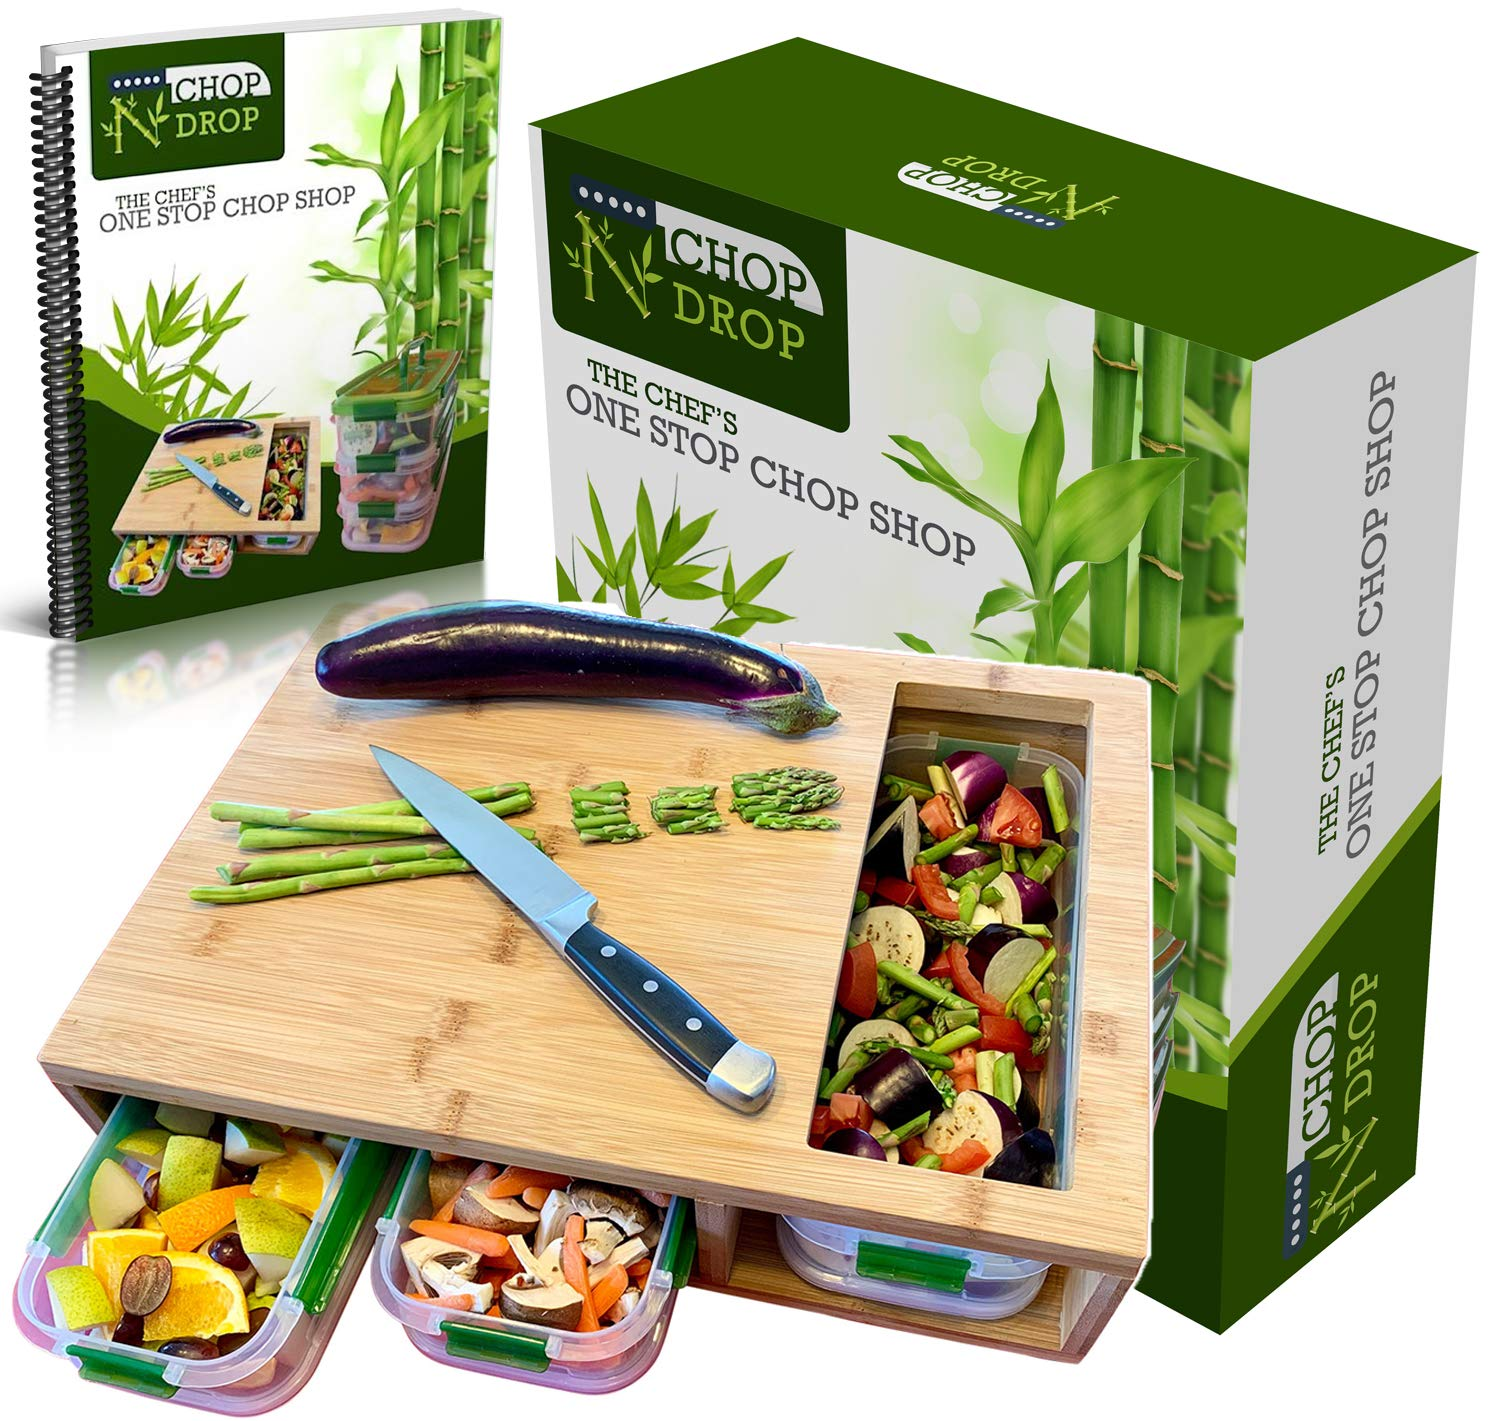 Bamboo Cutting Board With Containers And LOCKING LID. Extra Large Cutting Board Set With Trays For Quick And Easy Food Prep And Cleanup. Stackable Containers For Easy Storage And Transport